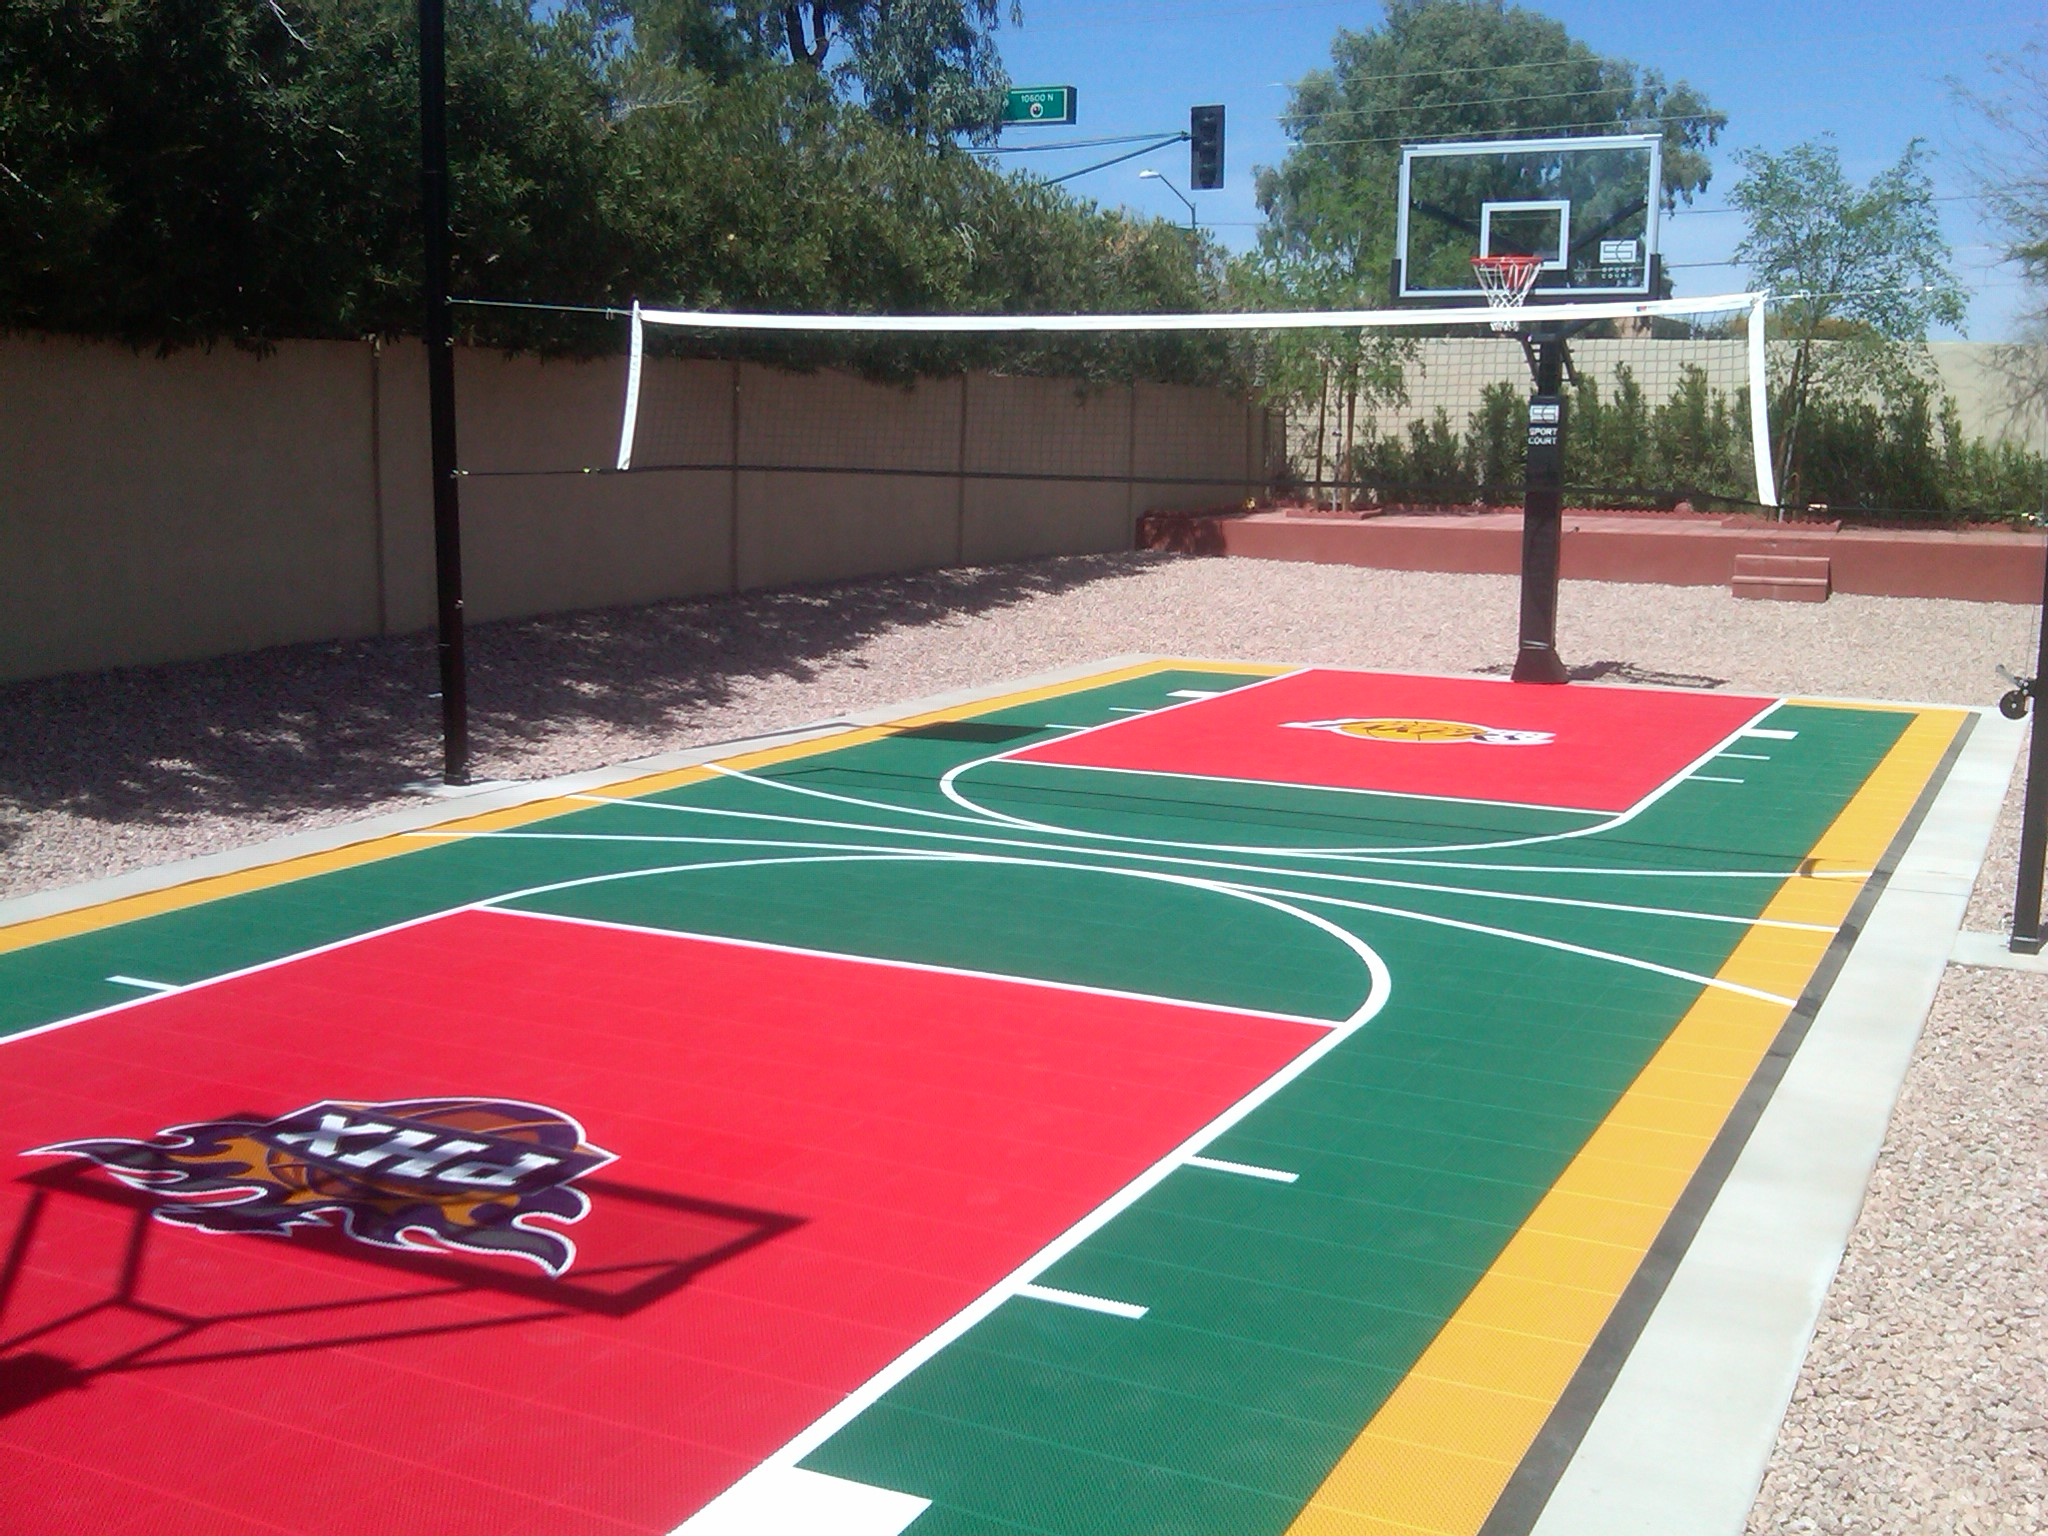 arizona backyard sport court - Backyard Garden Ideas For Kids